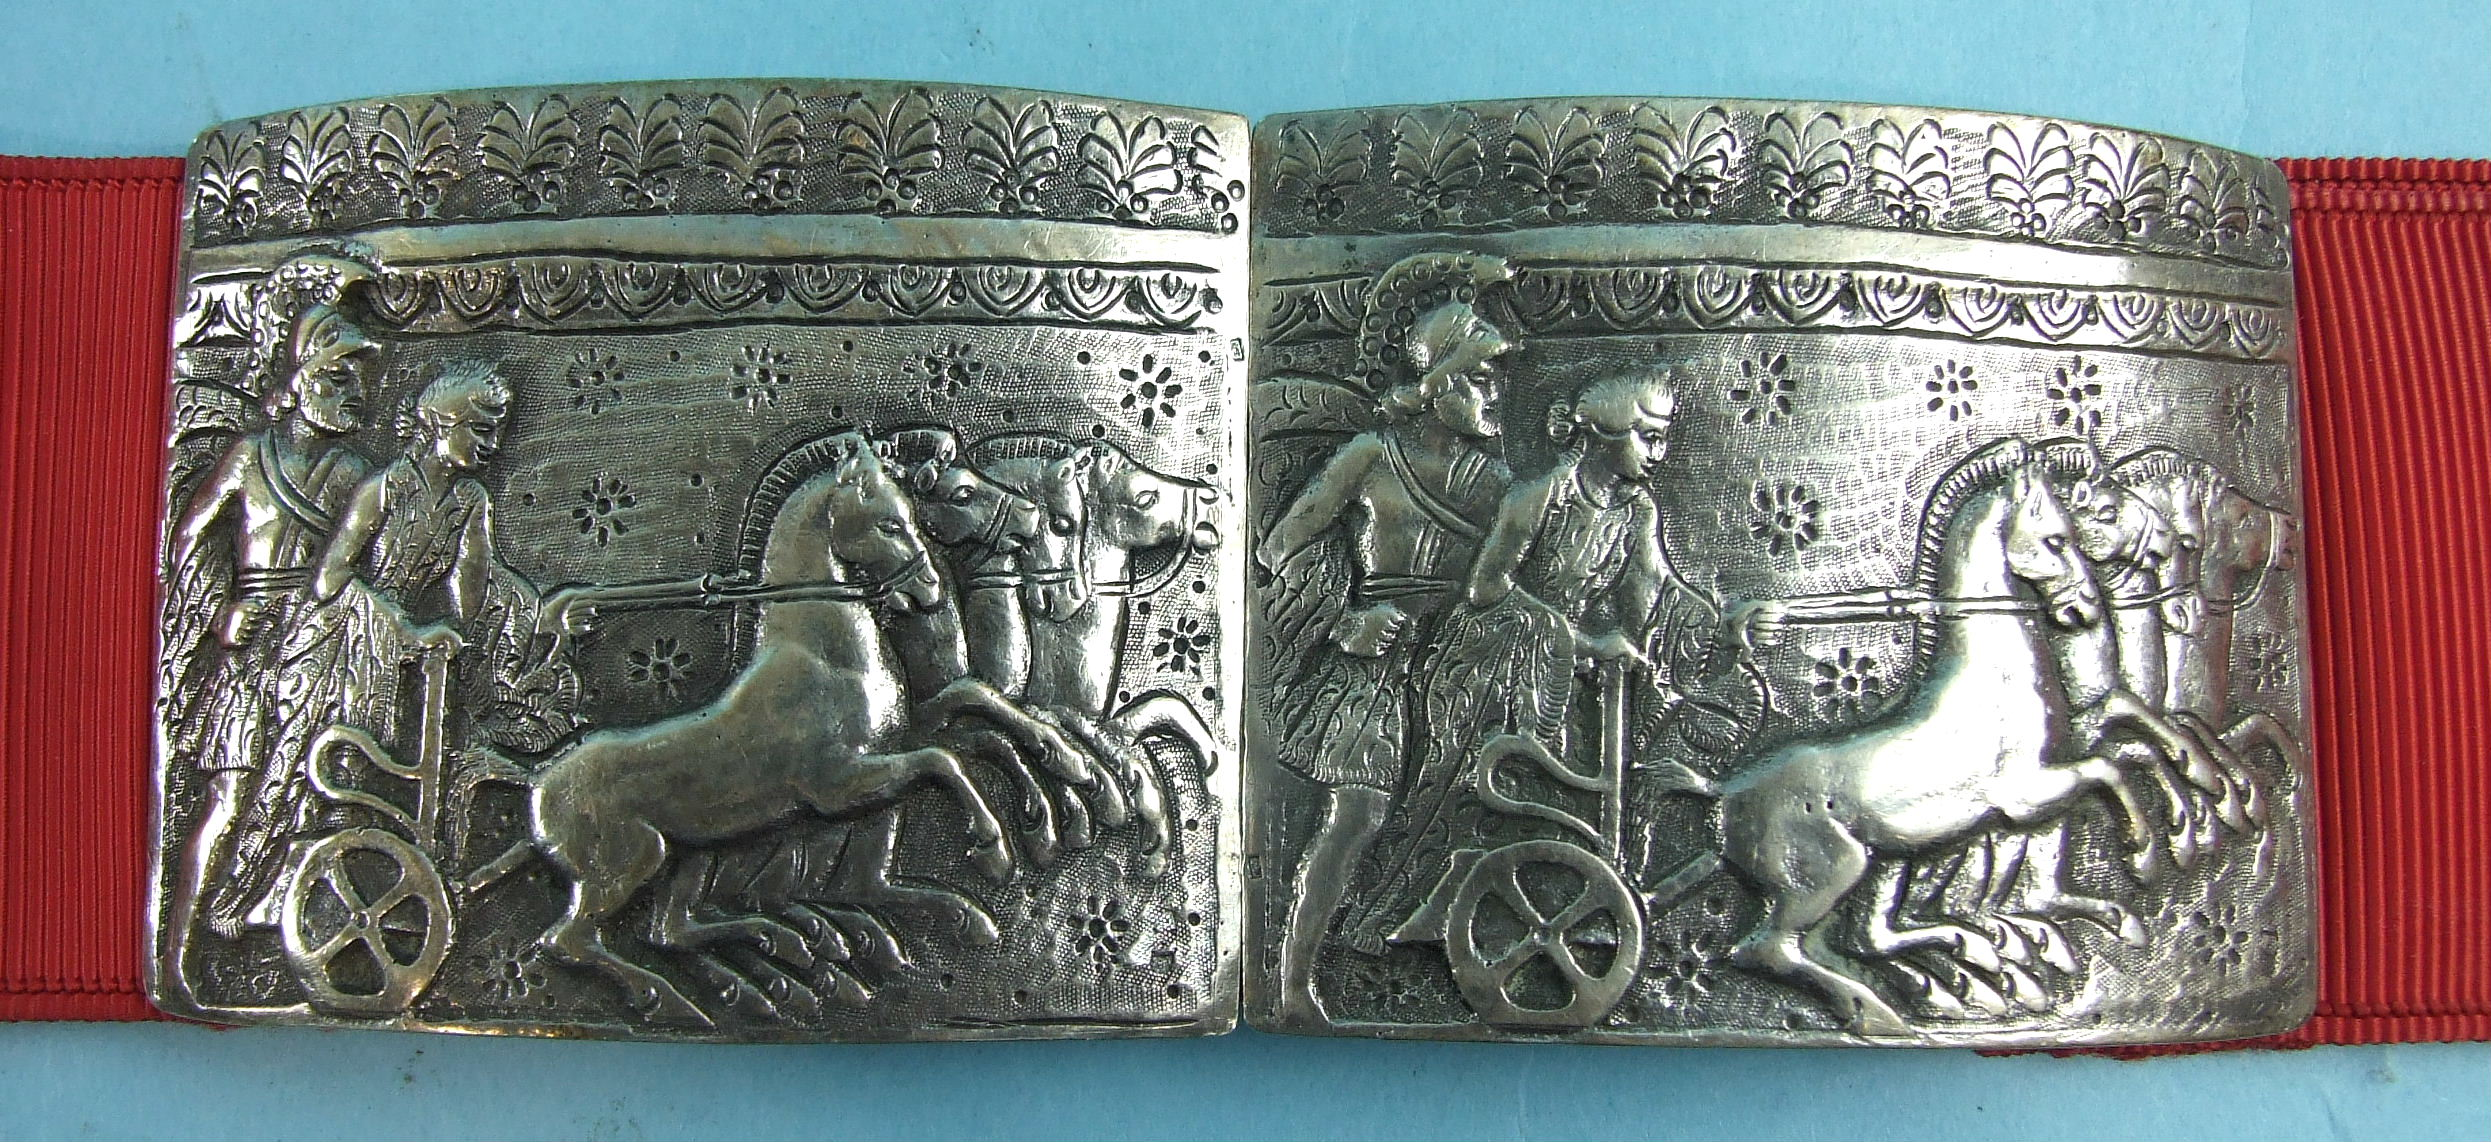 Lot 333 - A Continental white metal buckle of two rectangular plaques, each embossed and engraved with a Greek